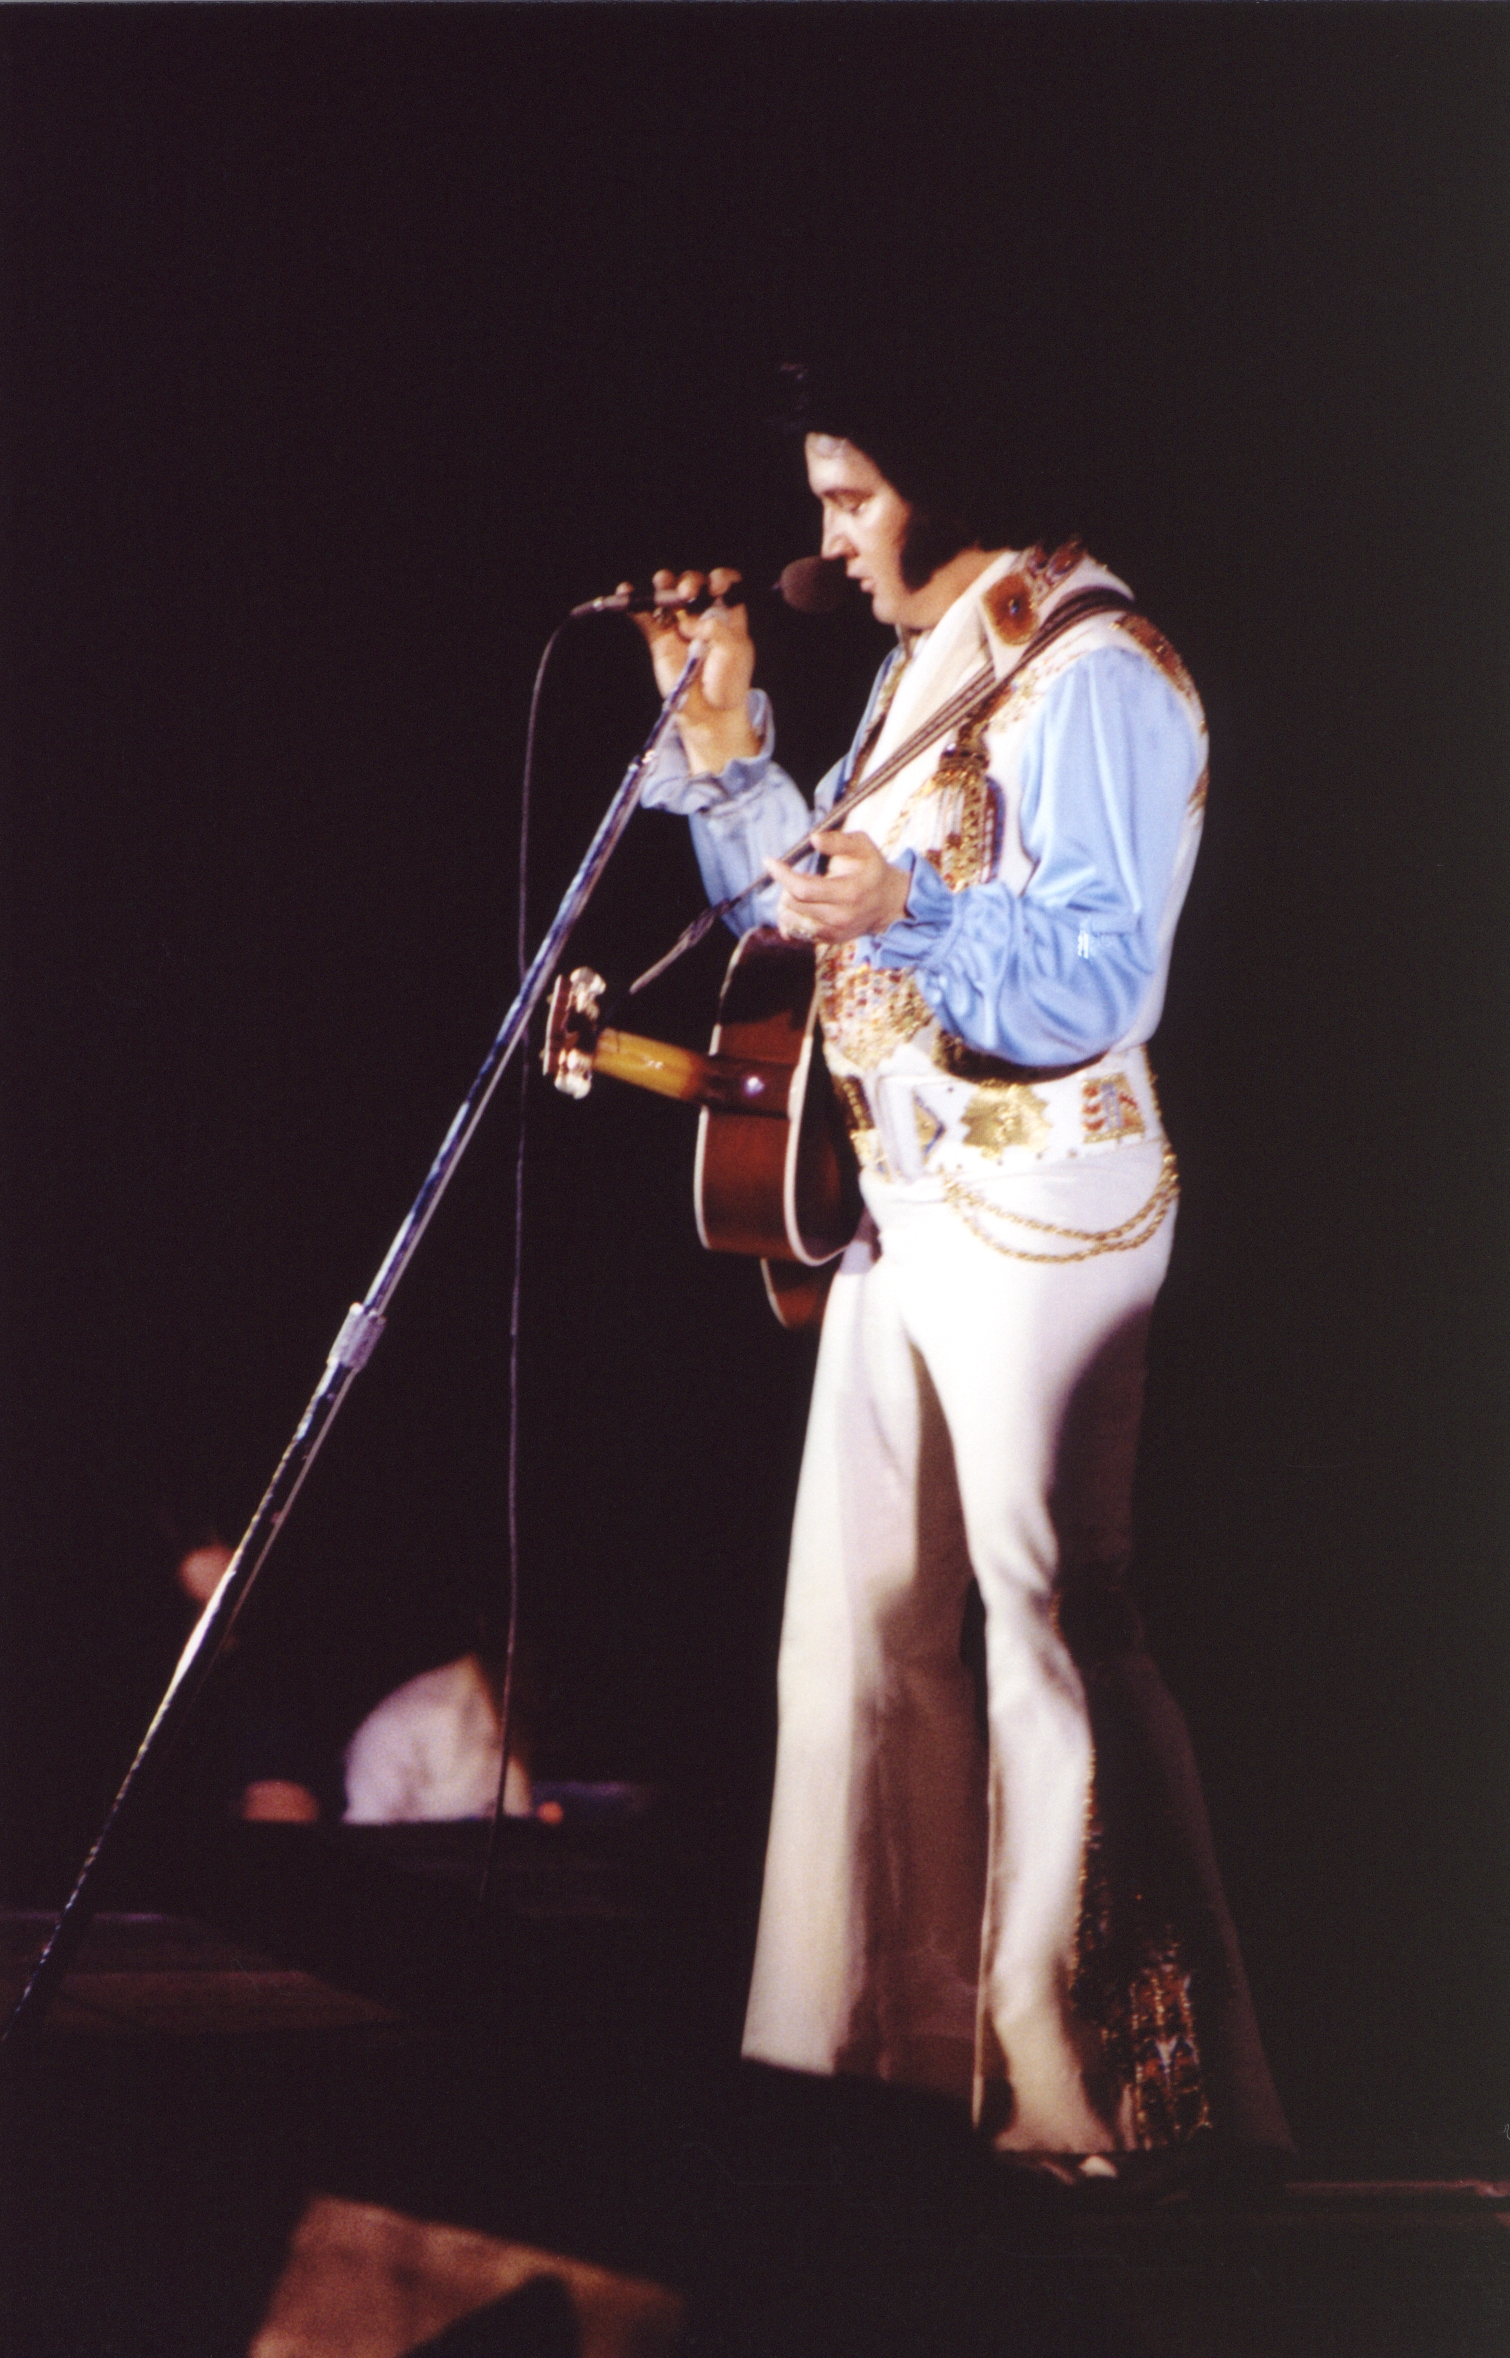 https://i2.wp.com/www.elvisconcerts.com/pictures/s76070501.jpg